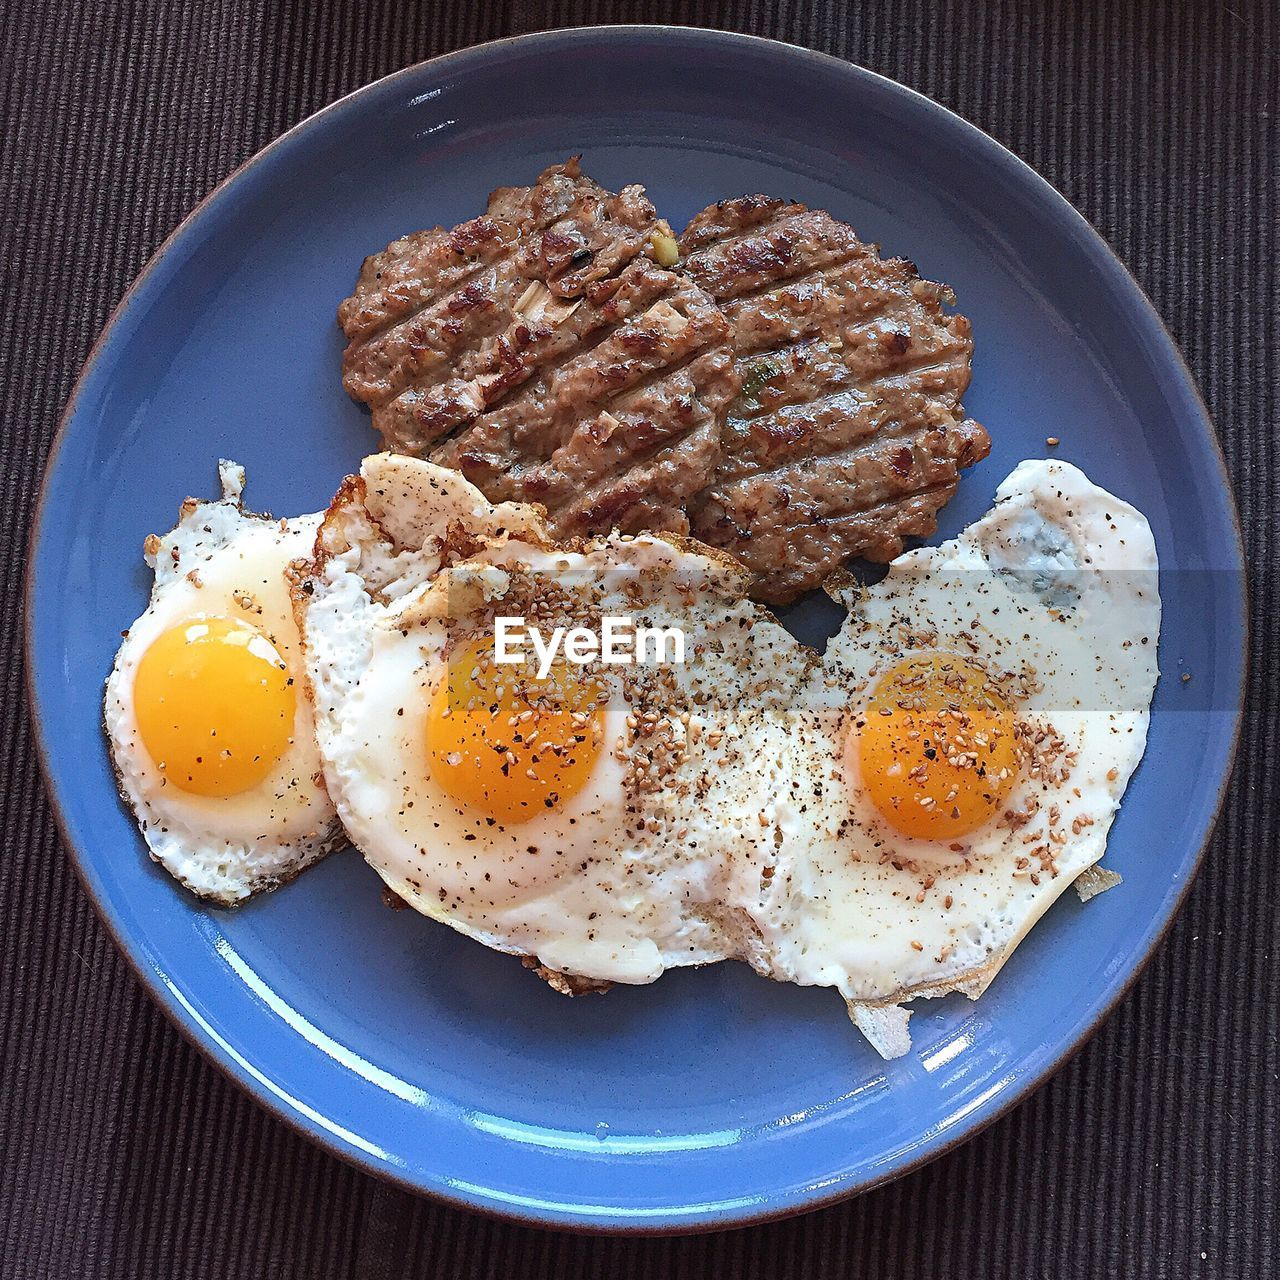 Directly above shot of breakfast in plate on table